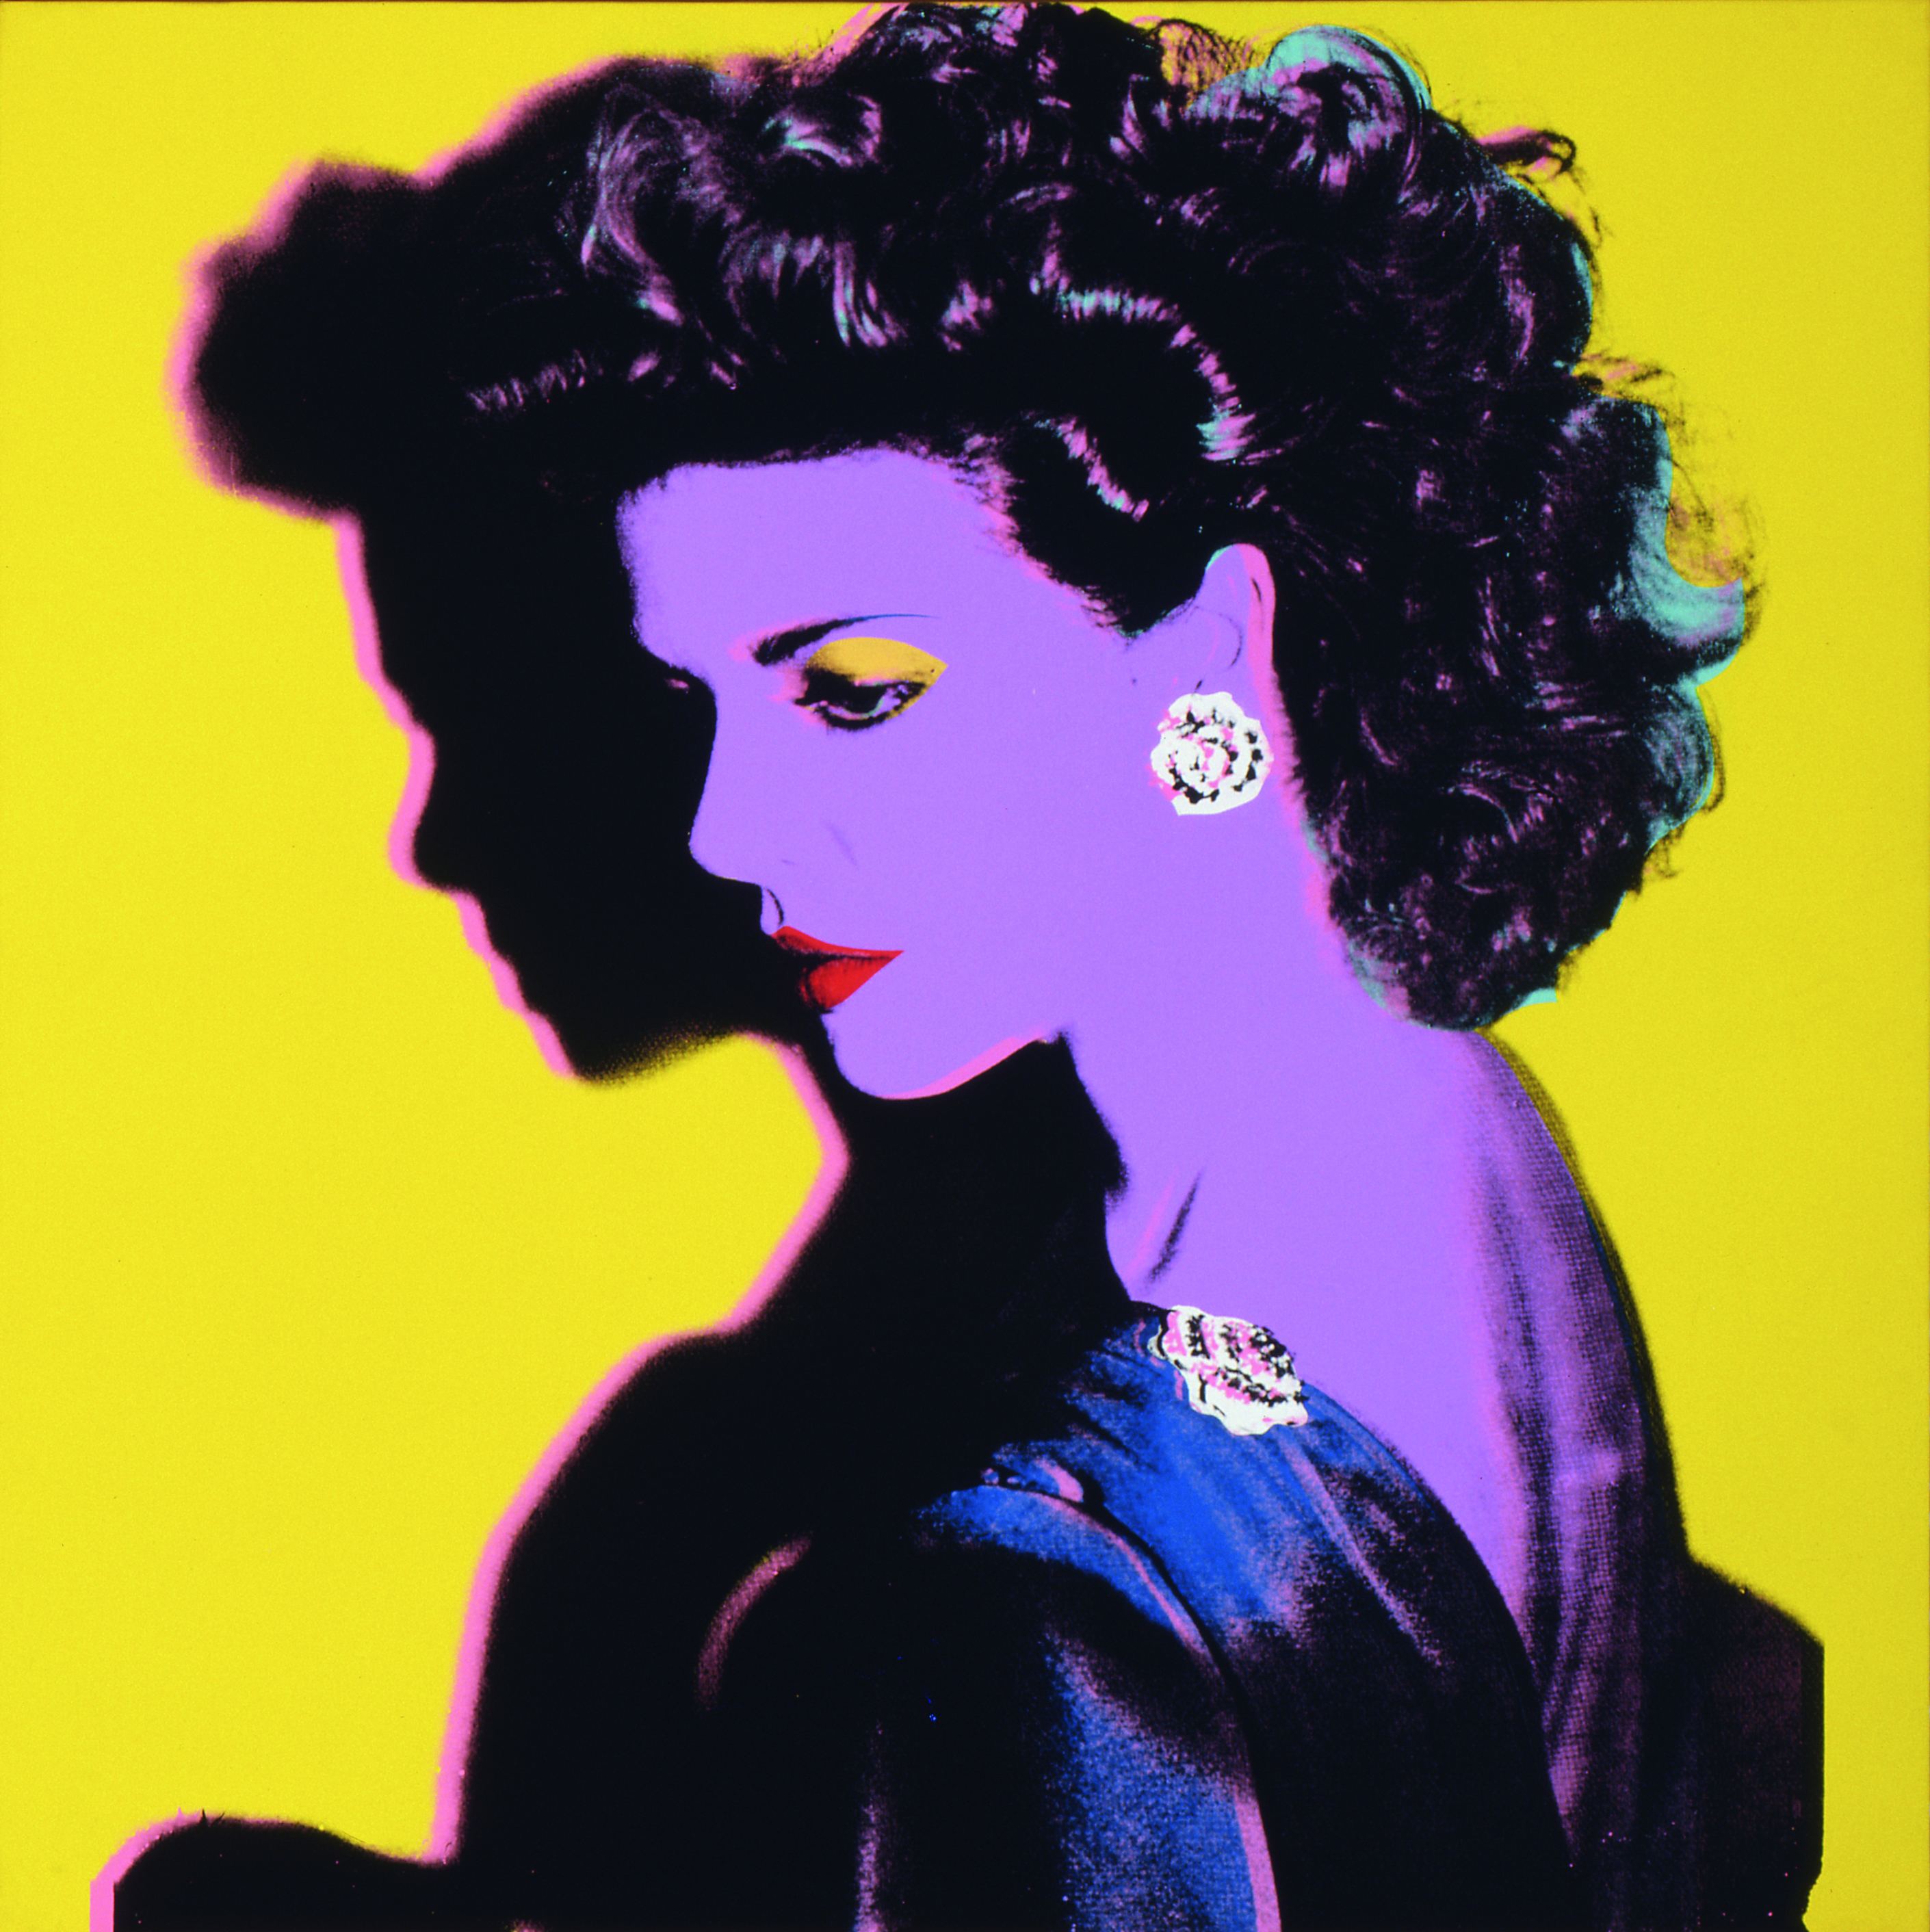 http://www.gayletter.com/wp-content/uploads/2014/05/PrincessCarolineofMonaco_AndyWarhol_GAYLETTER.jpg